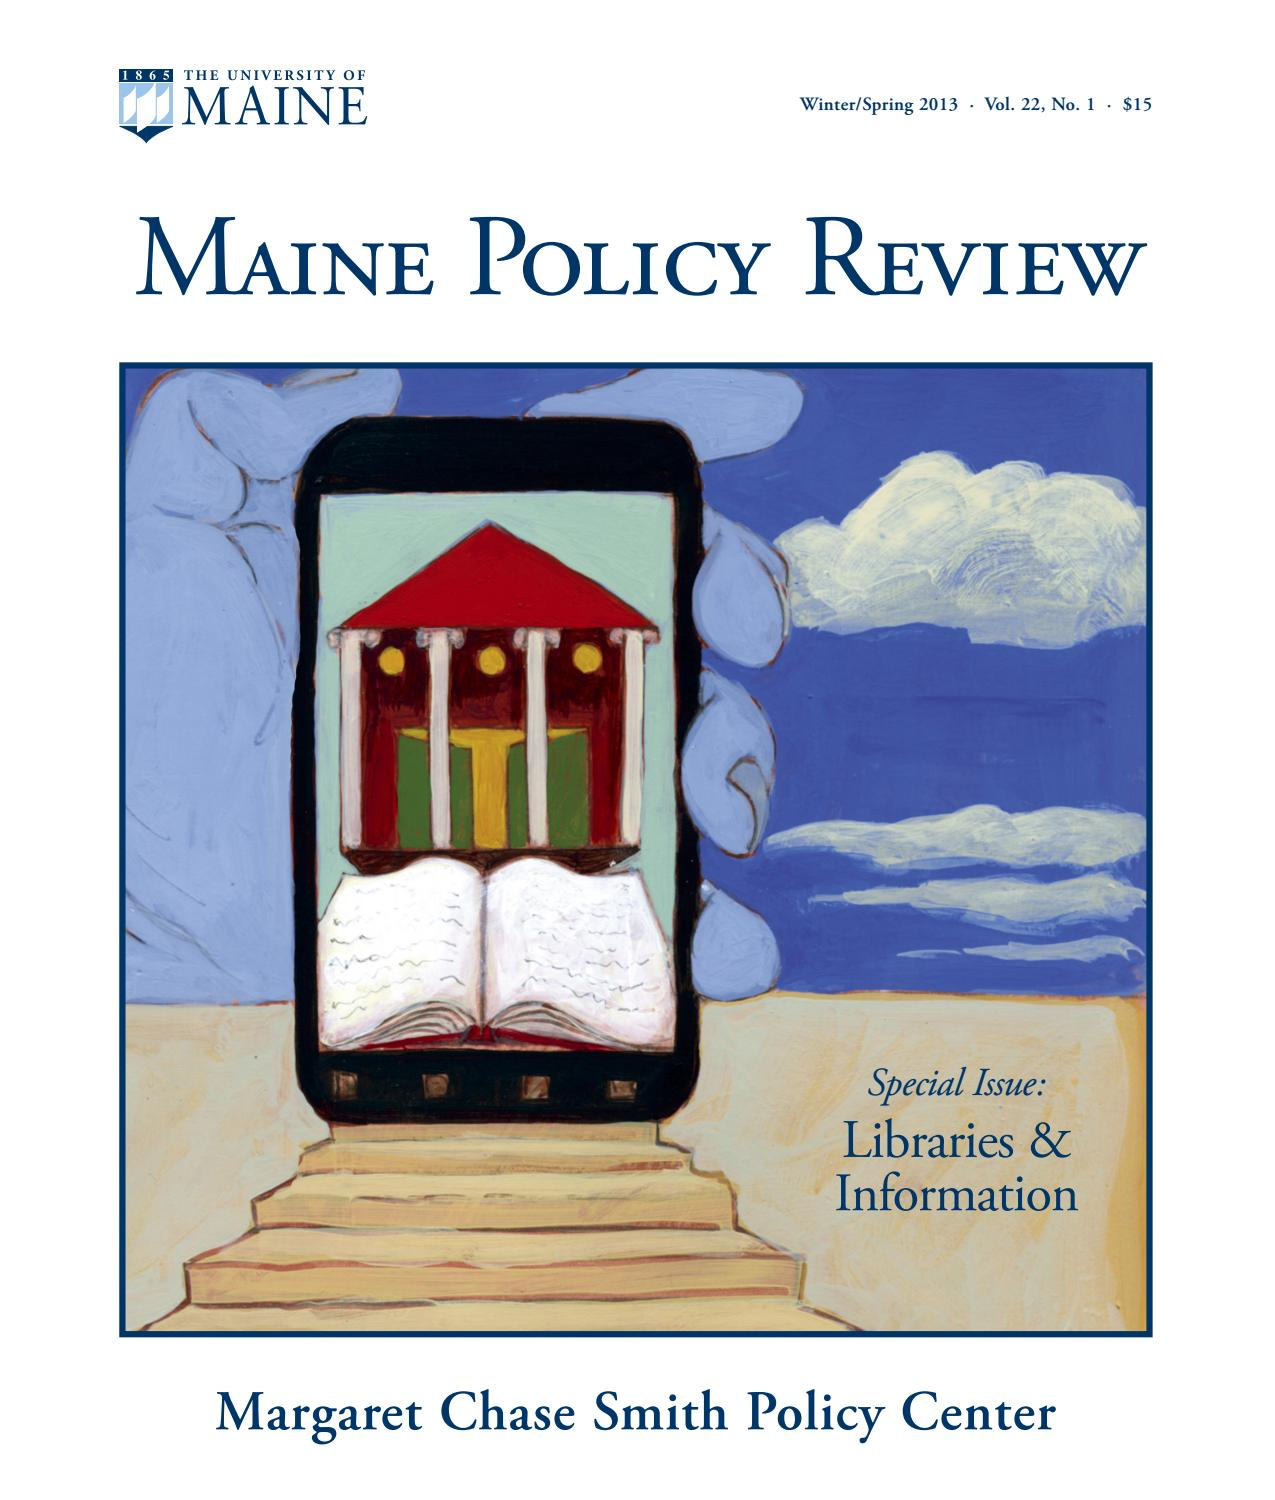 Maine Policy Review Winter/Spring 2013